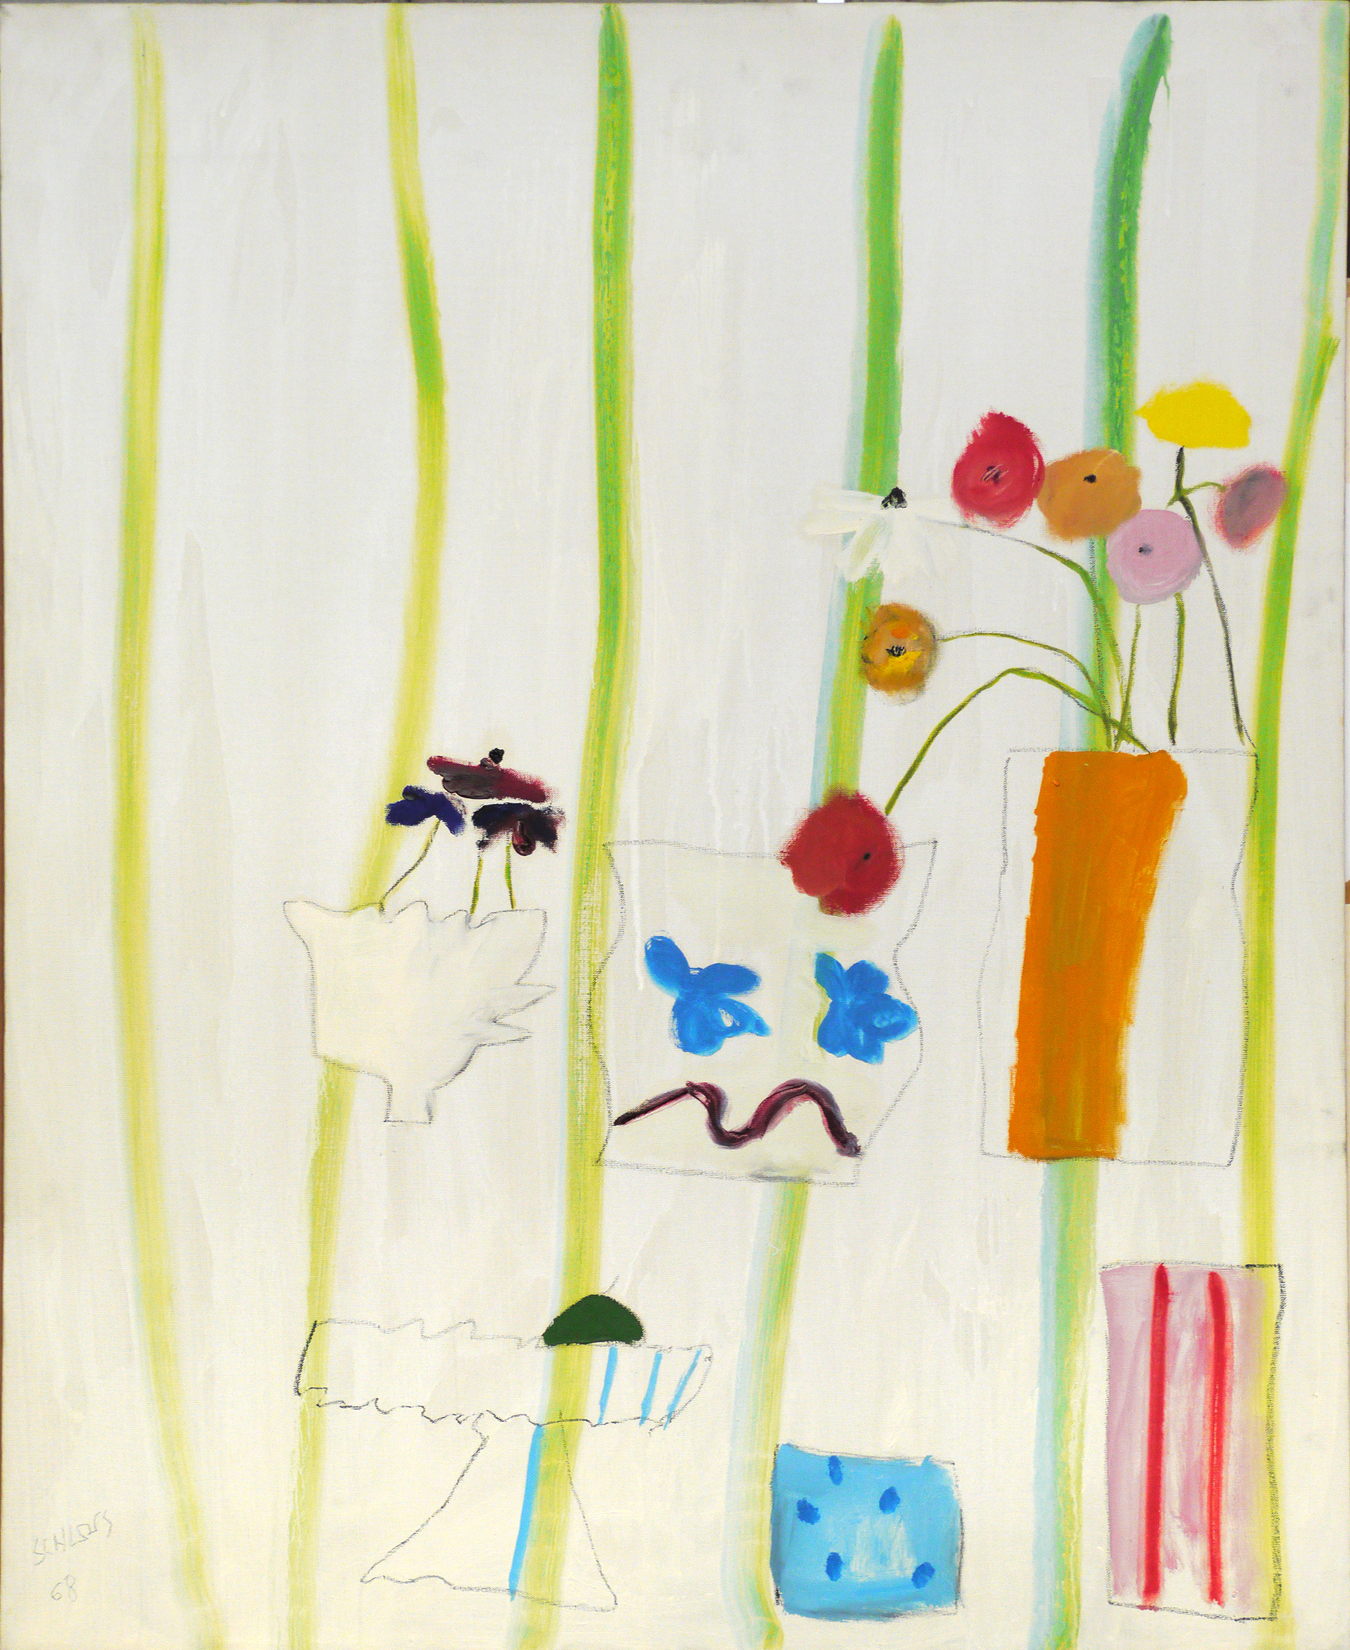 White background with green stripes, vase outlines with flowers (one vase is orange)